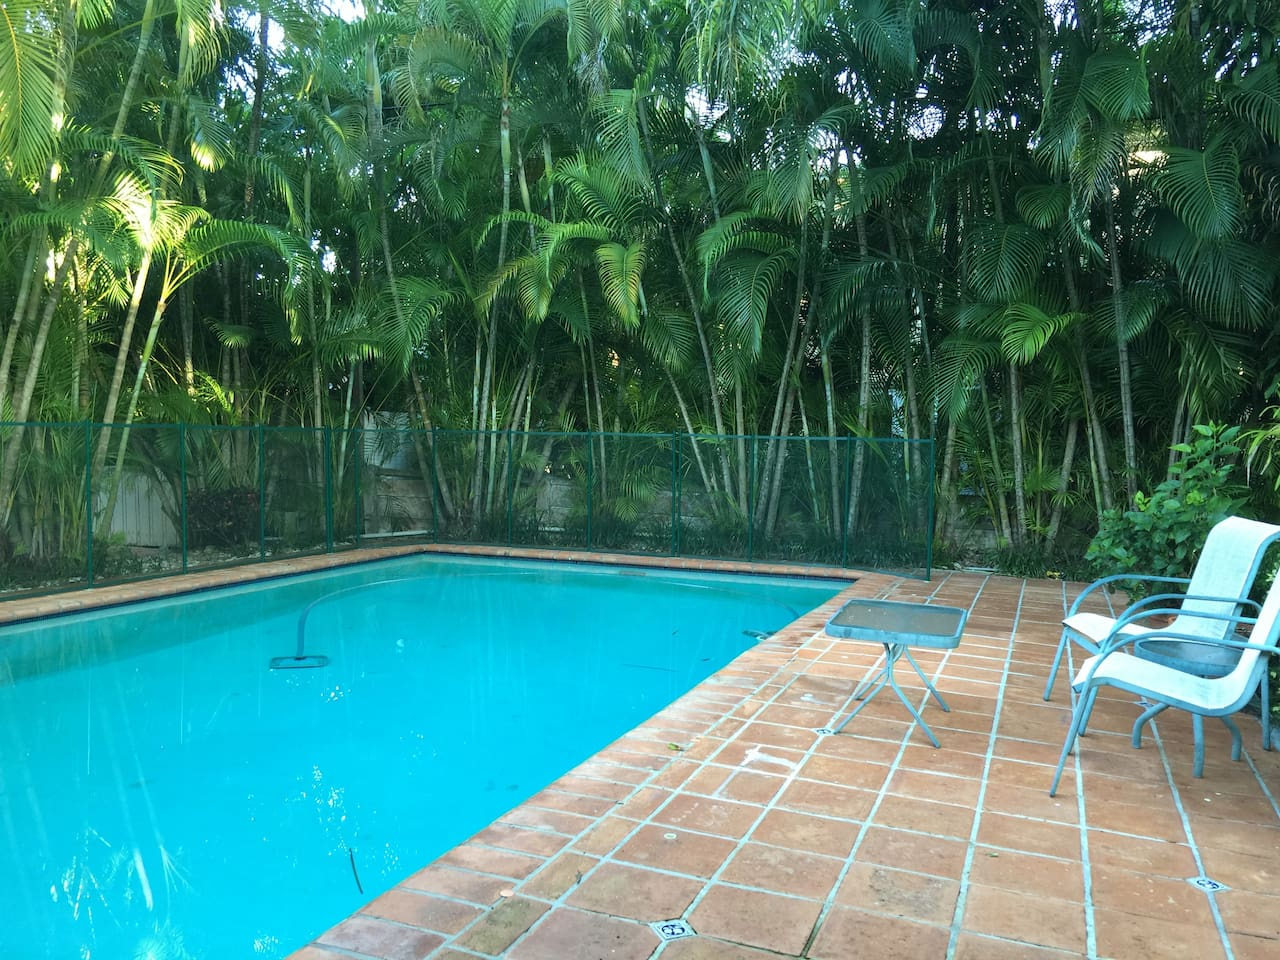 30 x 15 pool, full children's safety fence is requested , cleaned weekly